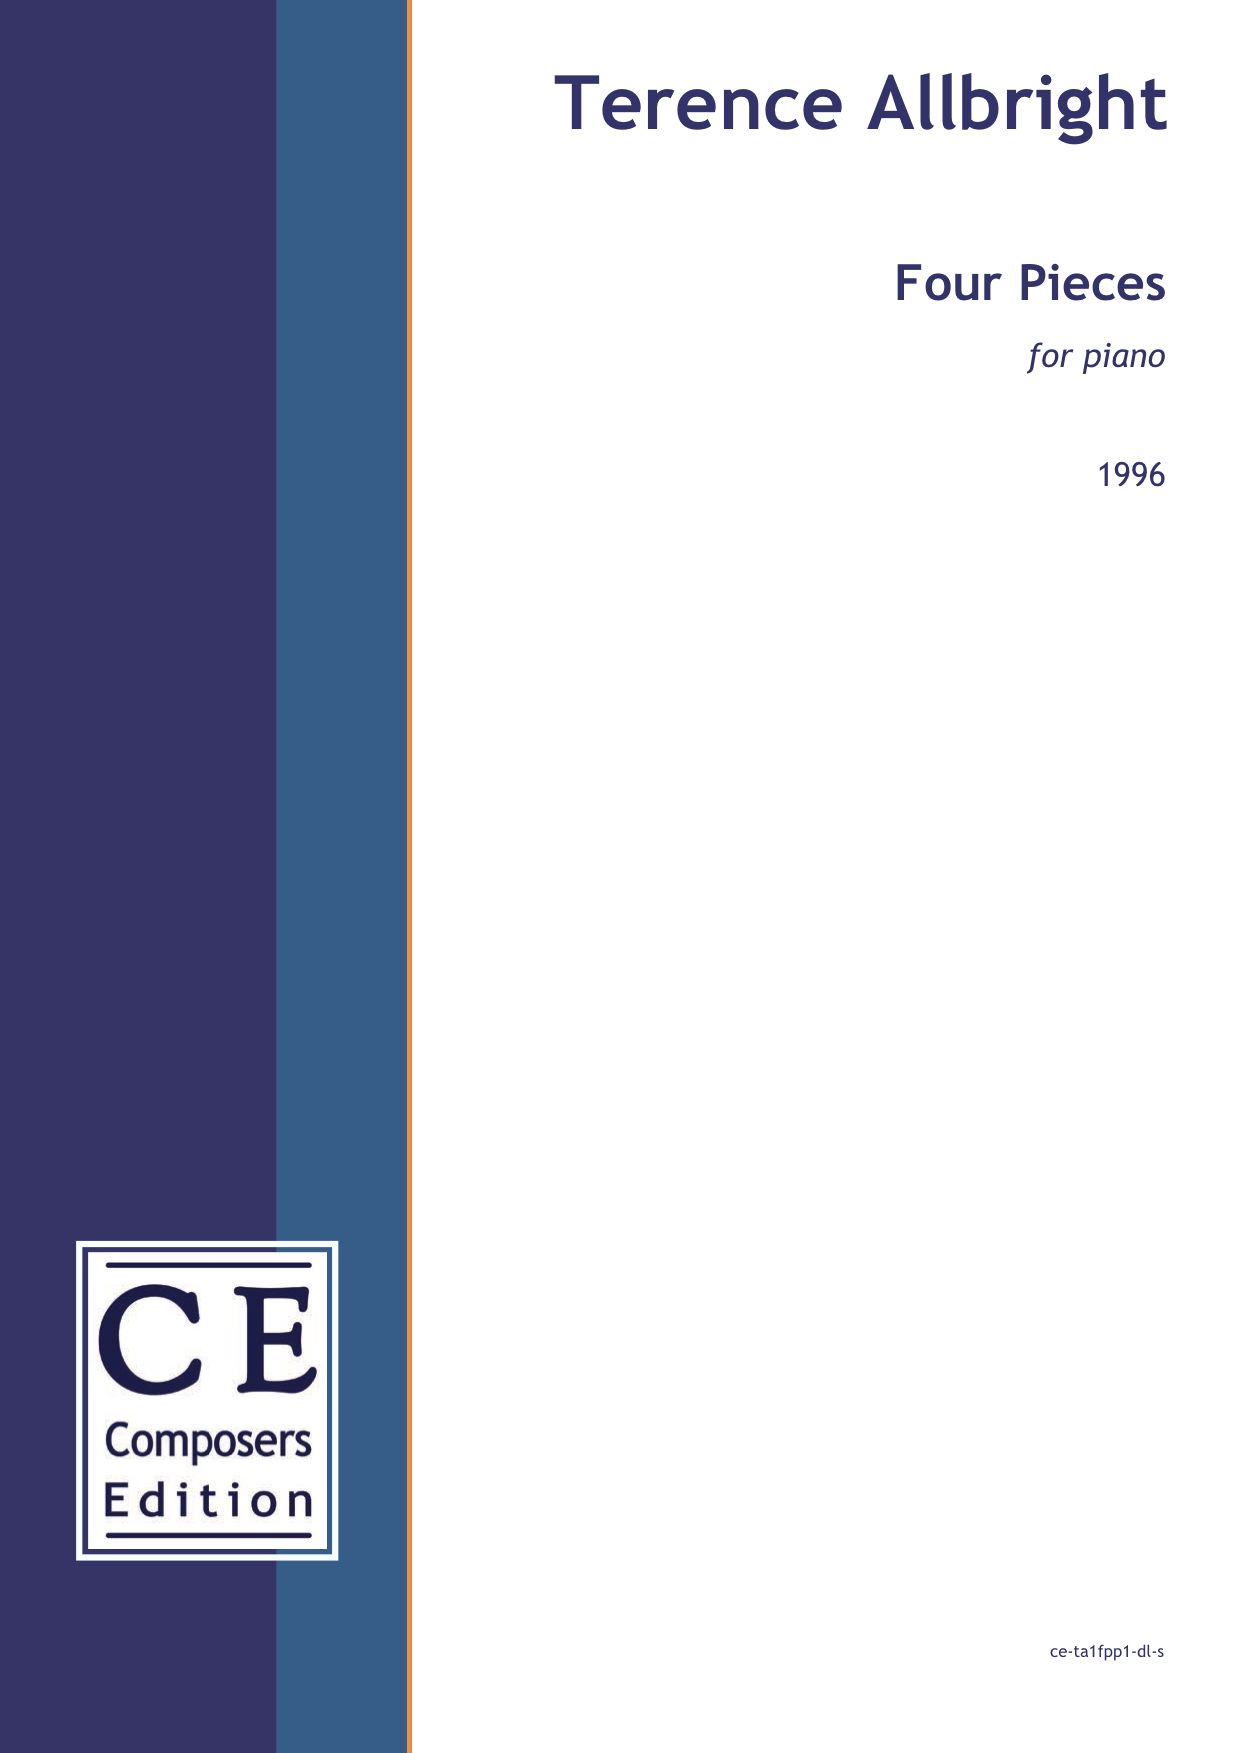 Terence Allbright: Four Pieces for piano